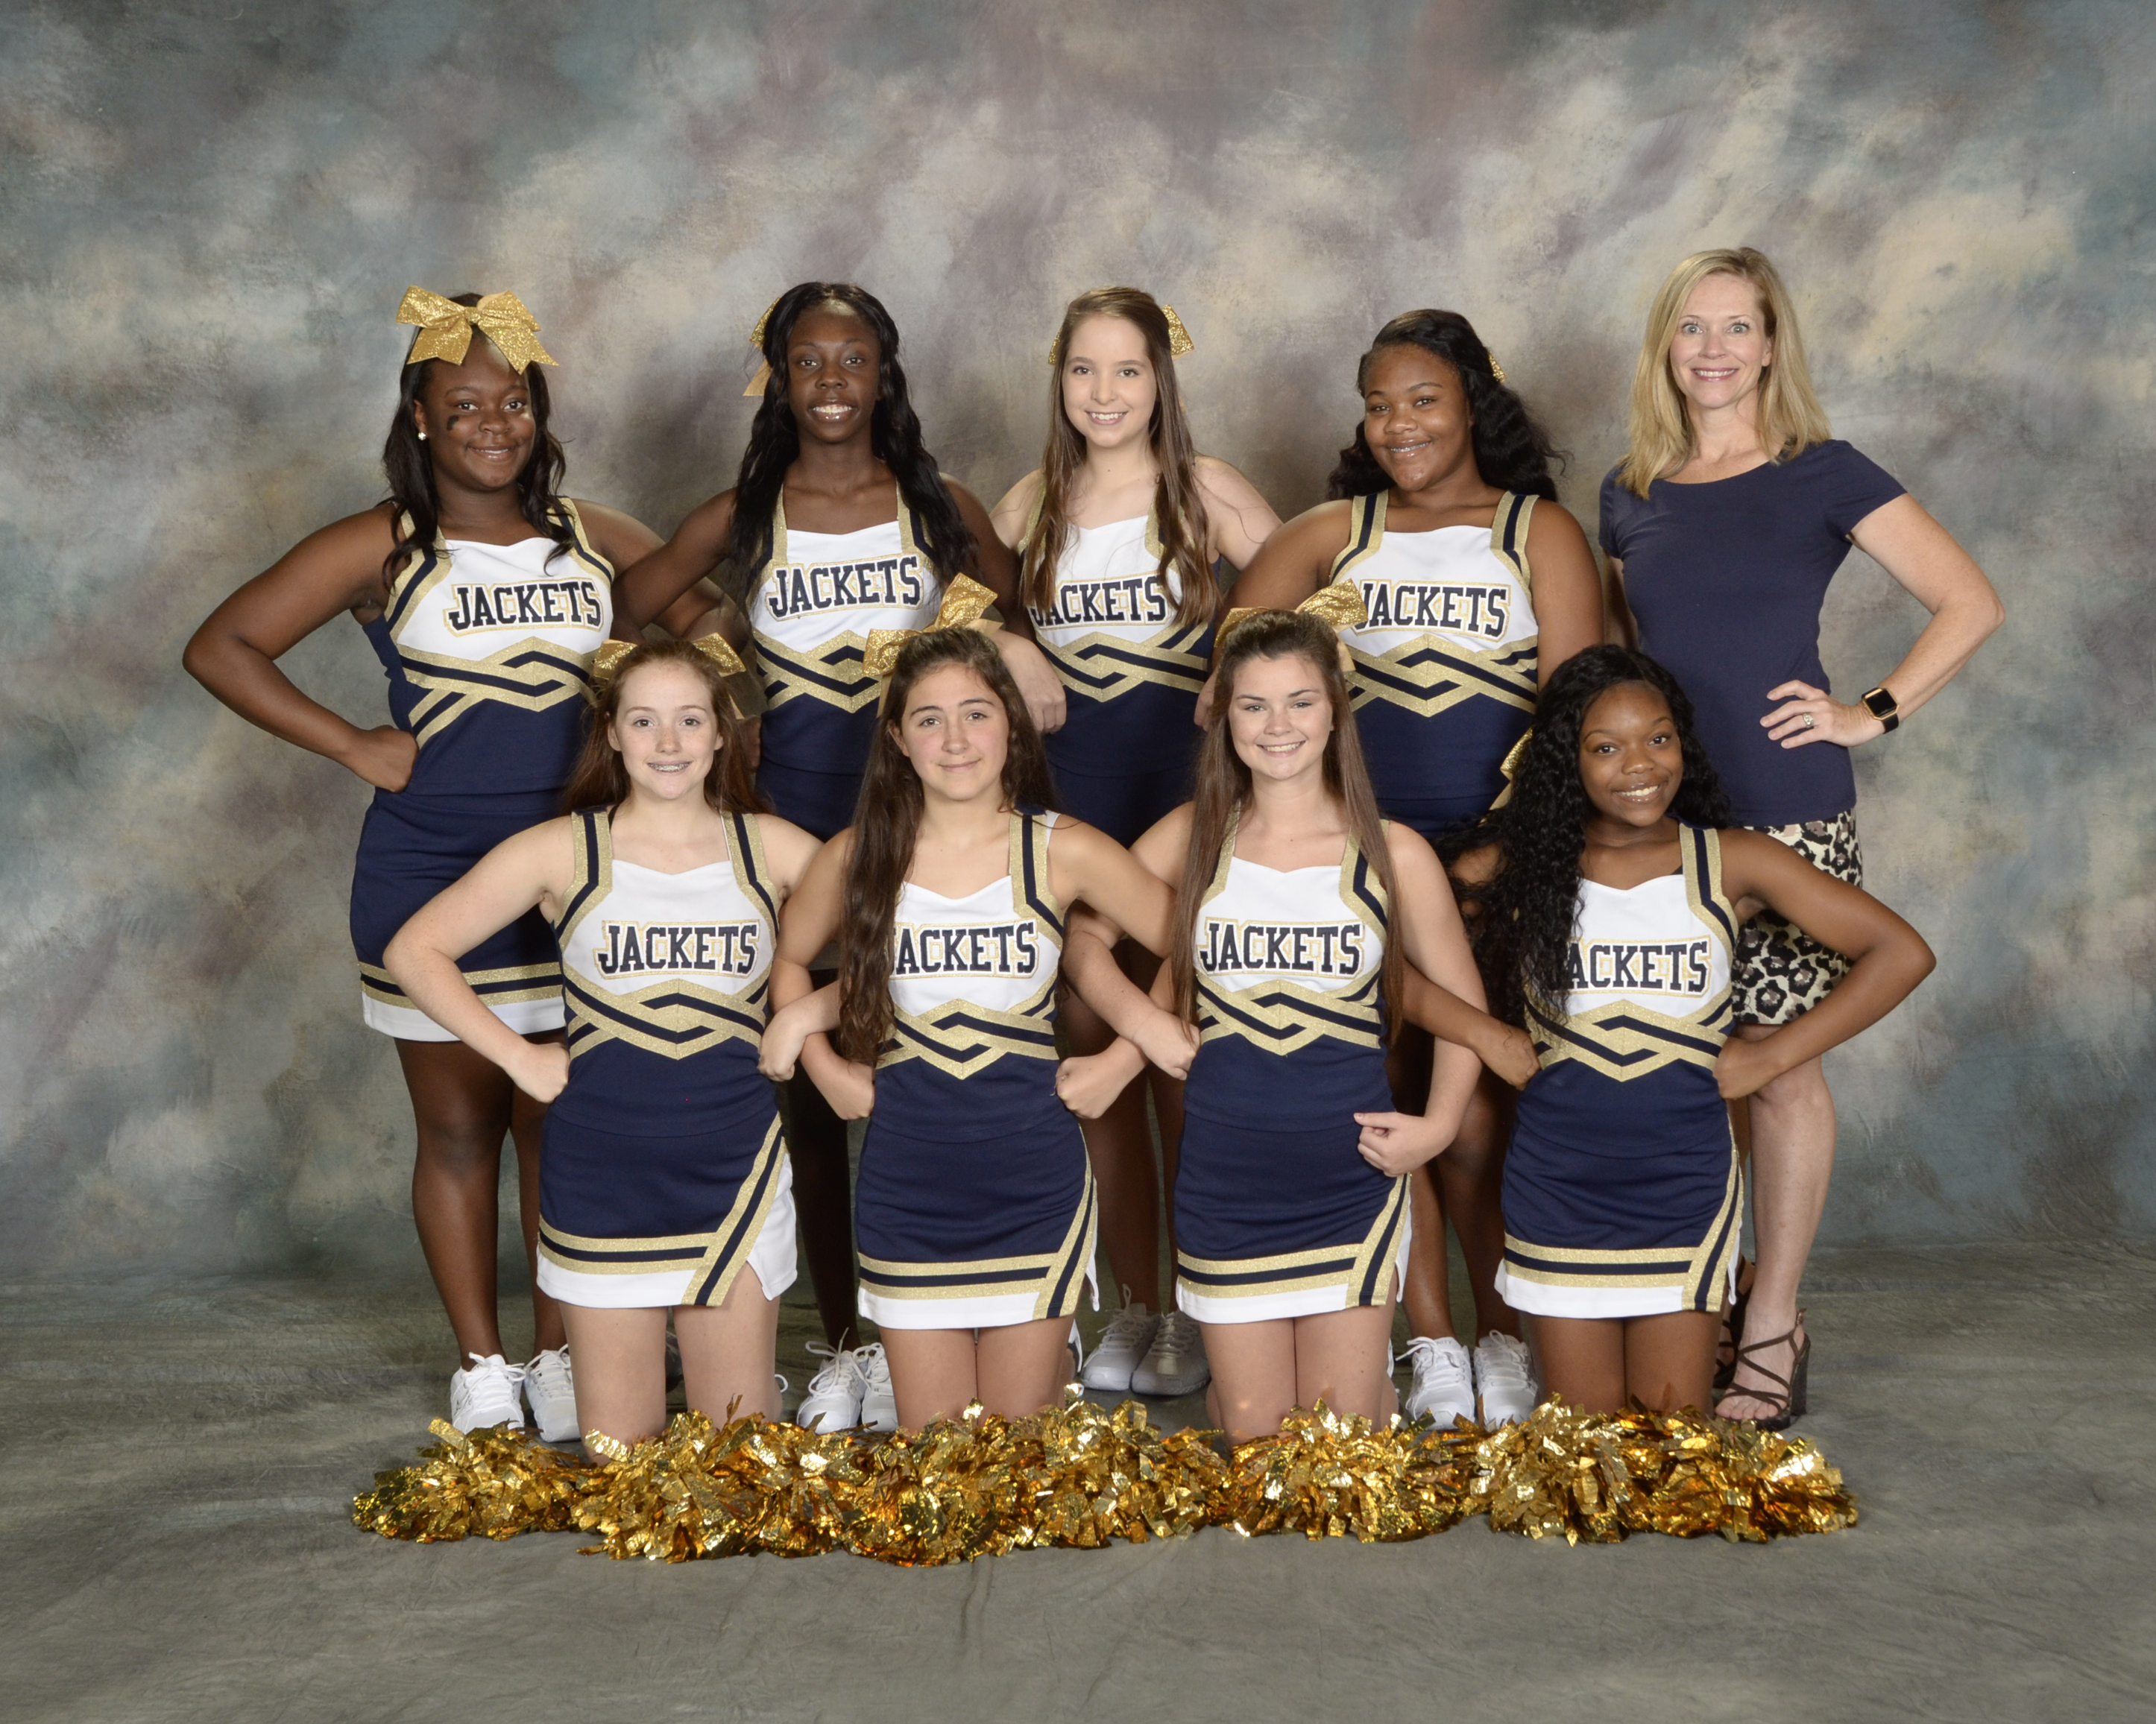 9th grade cheerleaders